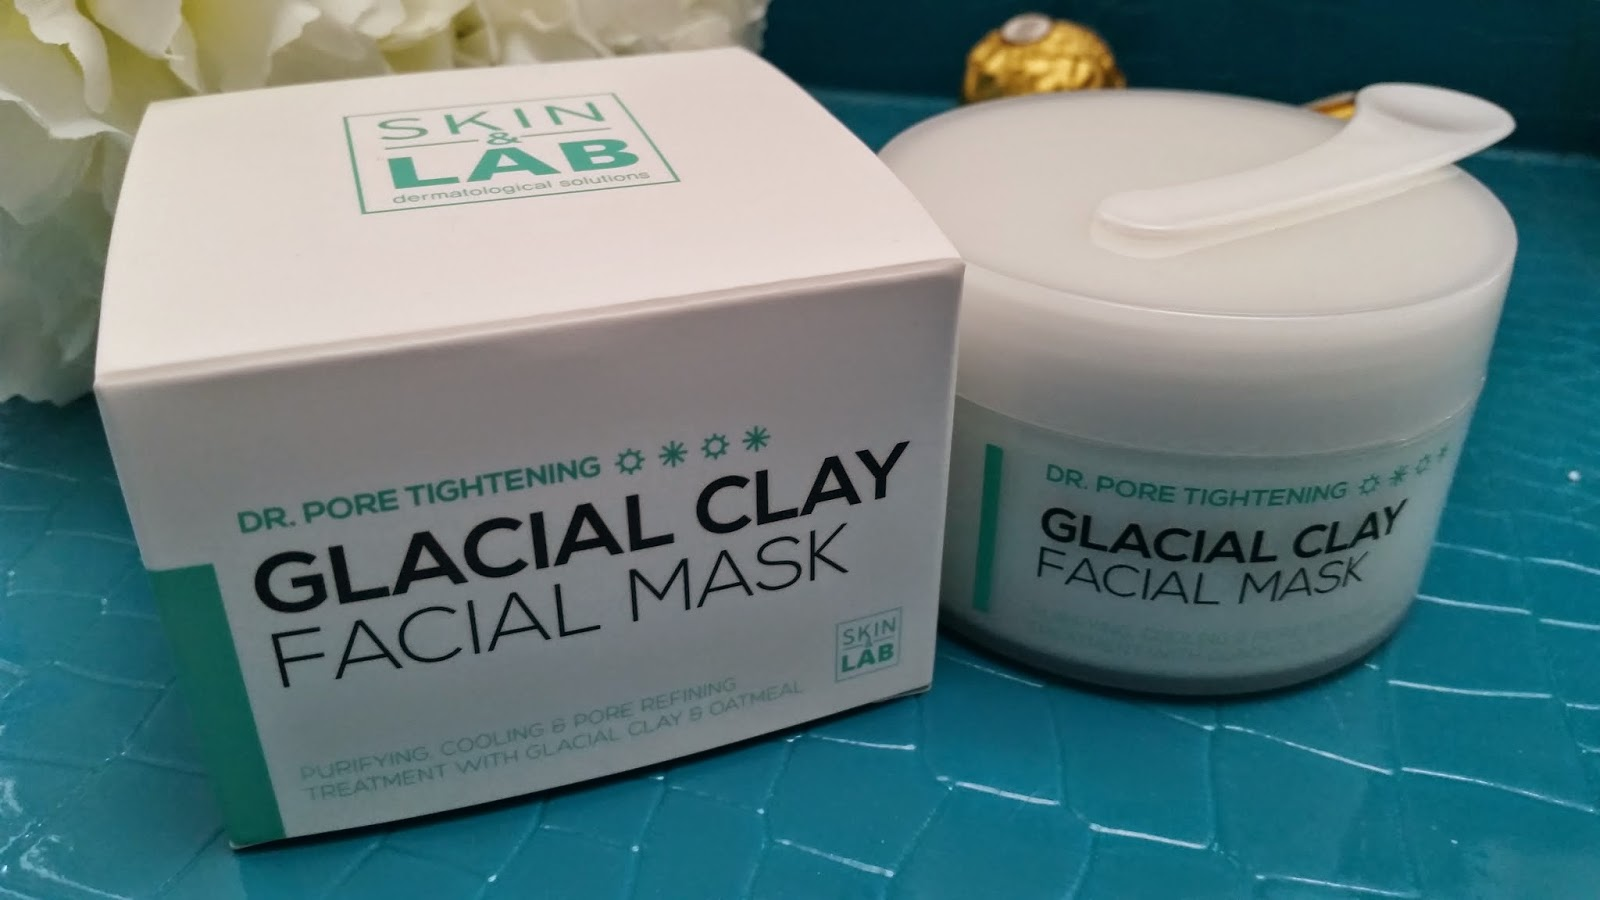 Dr. Pore Tightening: Glacial Clay Facial Mask